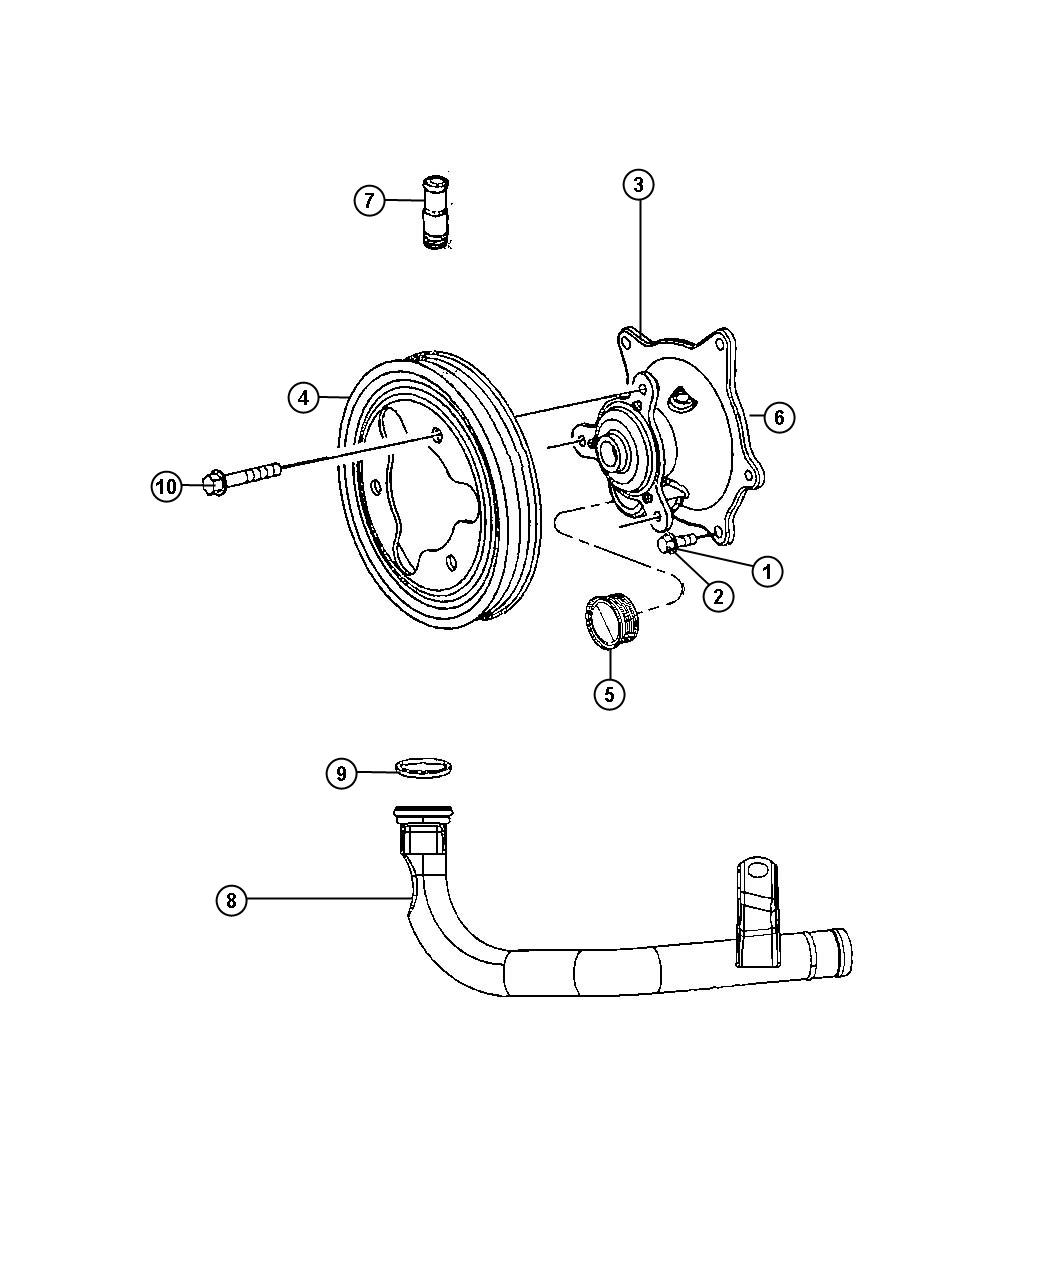 2004 Hyundai Santa Fe Belt Diagram together with Chevrolet Lt1 Engine Diagram further Cadillac Sts V Engine Diagram in addition P 0996b43f80cb1e11 besides Dodge 3 3l V6 Engine Diagram. on 1996 chevy monte carlo water pump